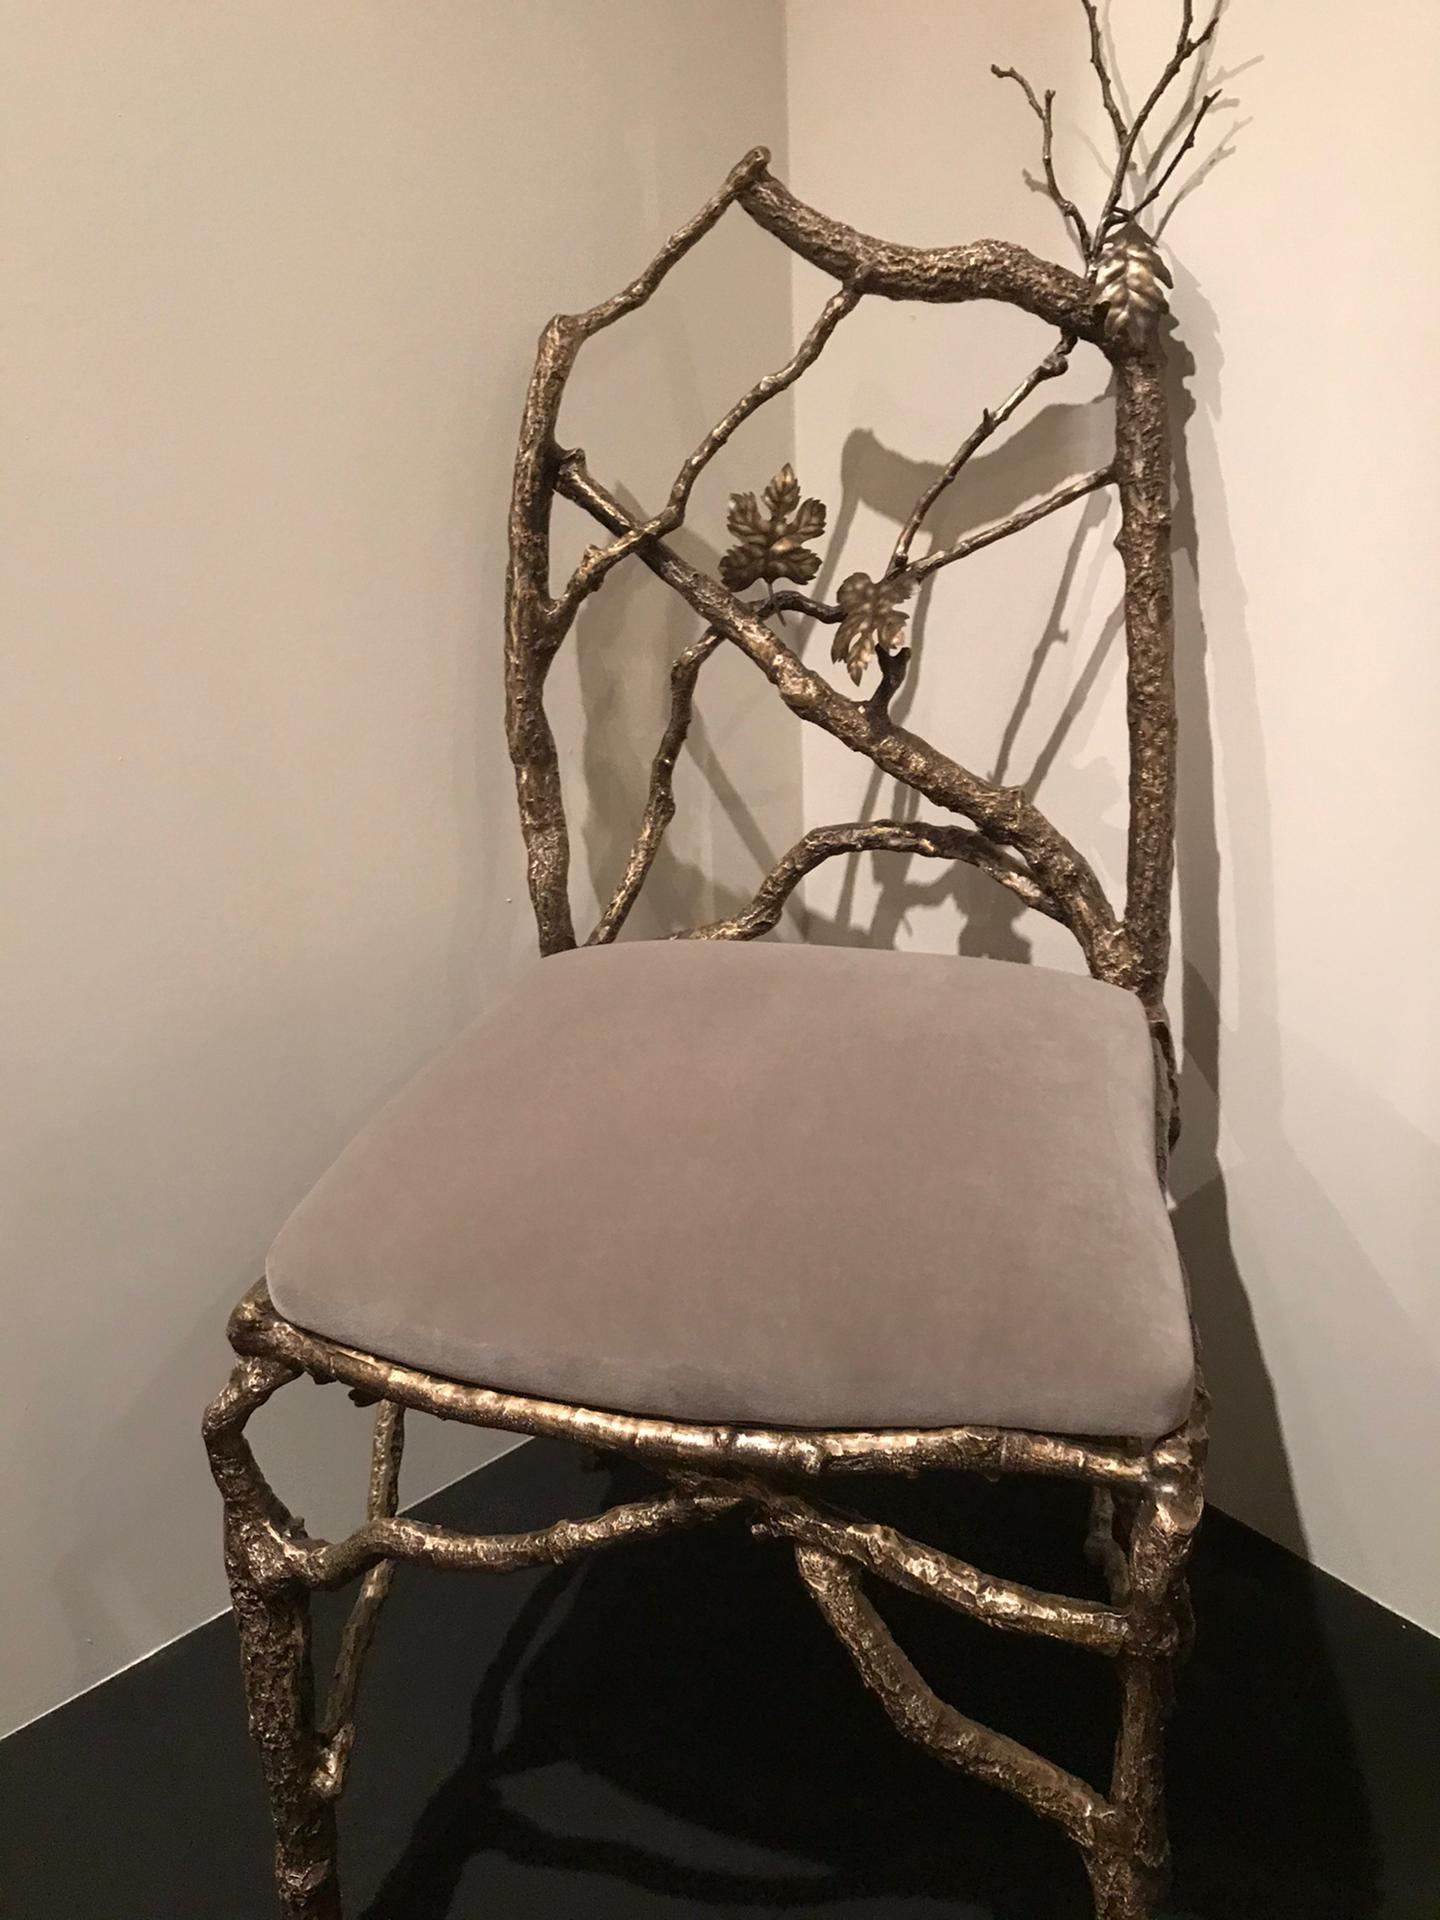 maison et objet 2020 Maison et Objet 2020: Take a Look the Best Chairs! Maison et Objet 2020 Take a Look the Best Chairs 12